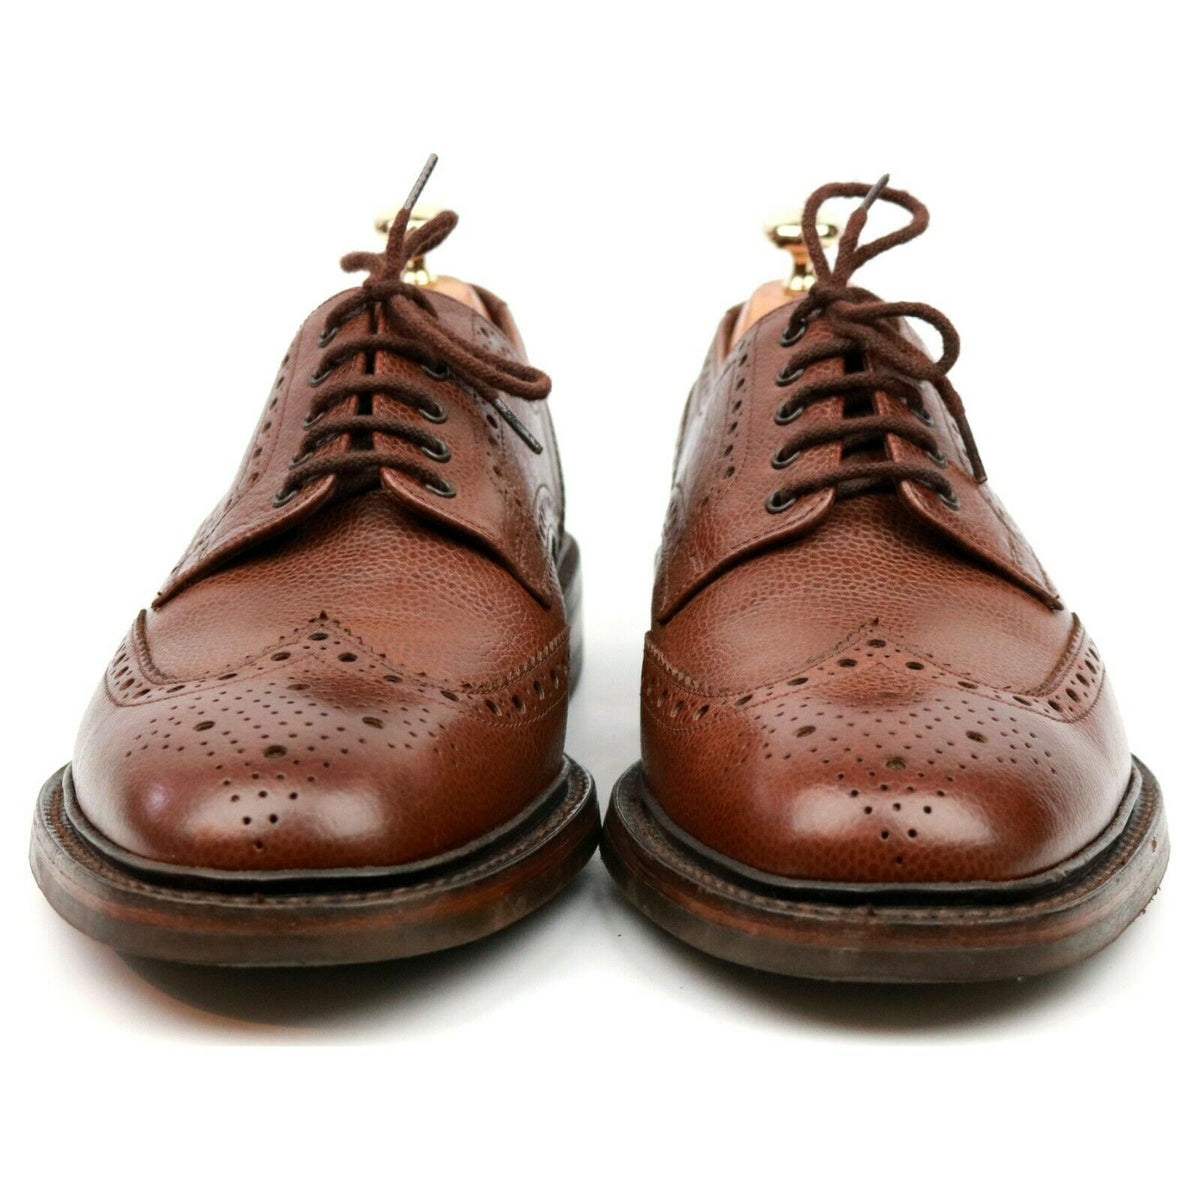 Loake 1880 'Badminton 2' Brown Leather Derby Brogues UK 8 G